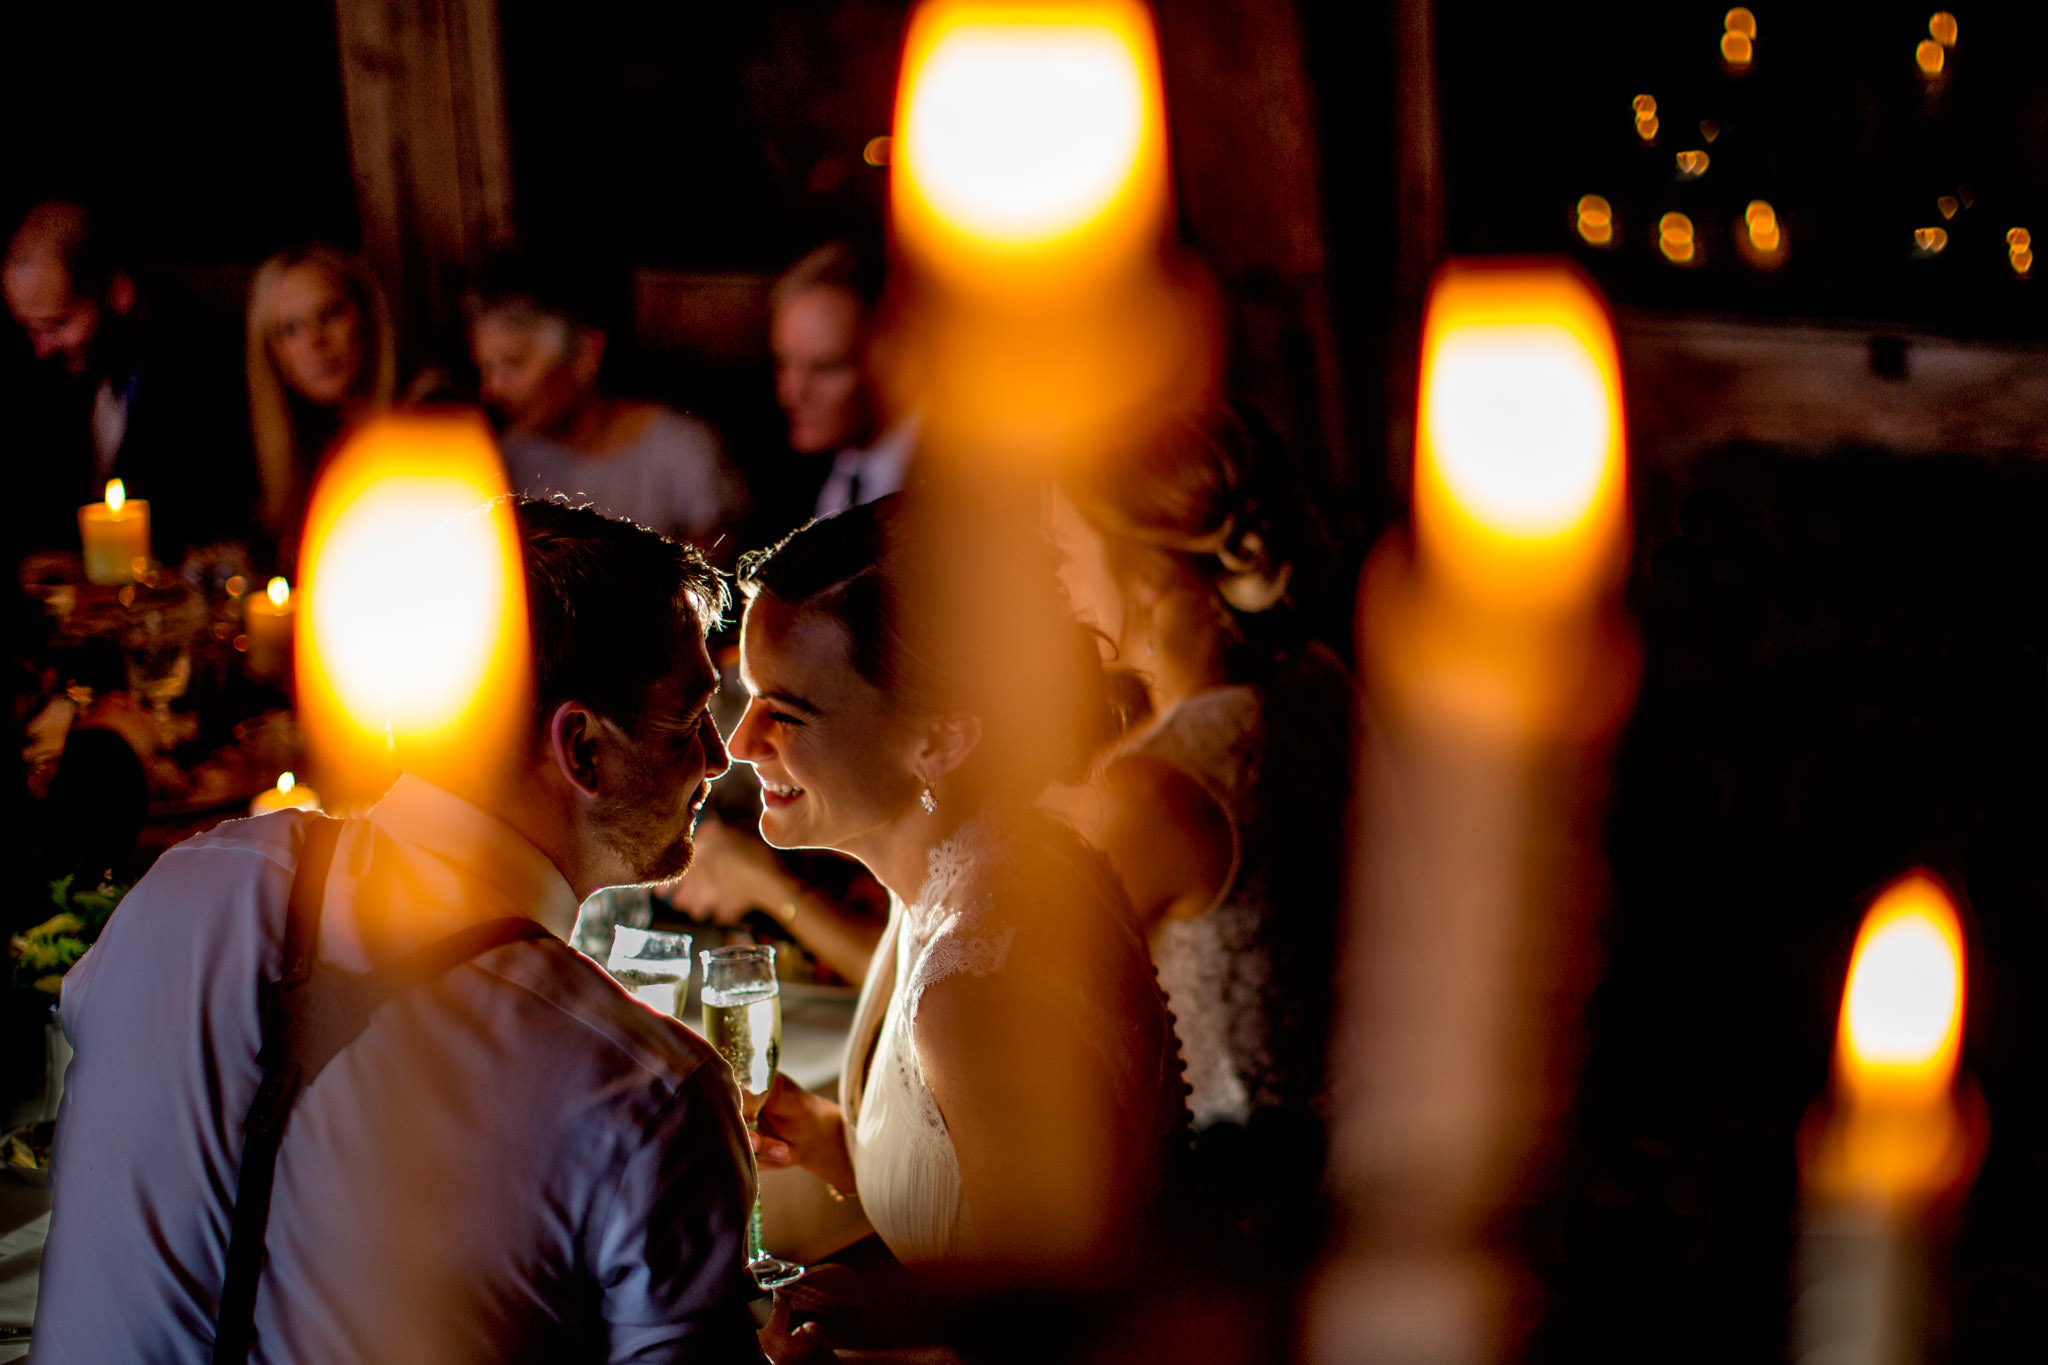 Bride and Groom smiling at reception through candle lights during reception at Silcox Hut at Timberline Lodge